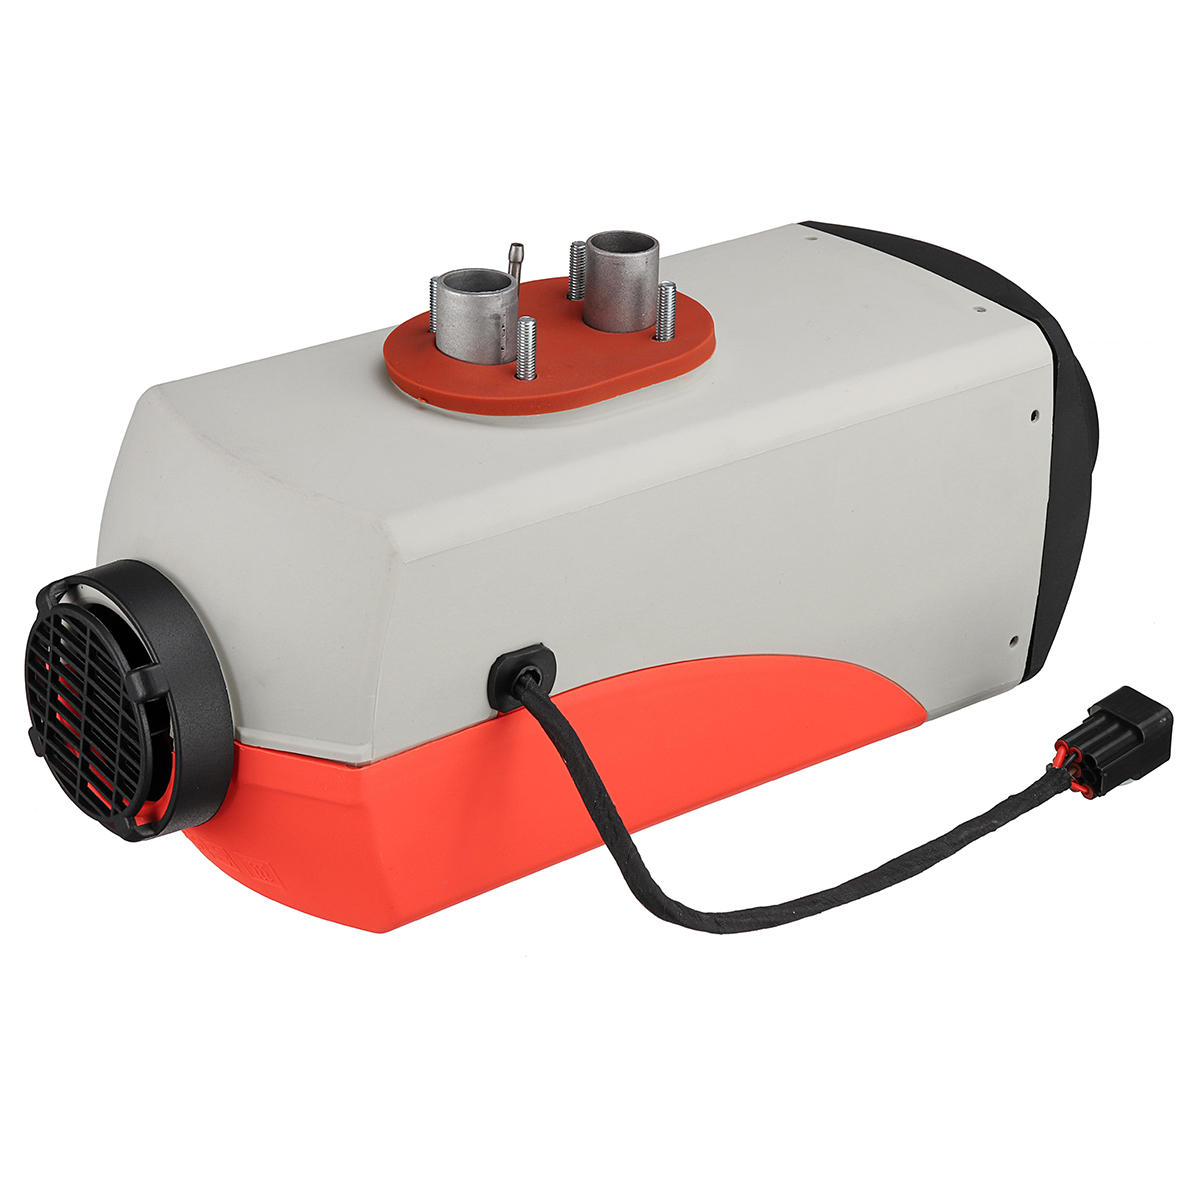 12V 8KW Gray Bottom Red Cover Blue LCD Version Car Heater With Remote Control